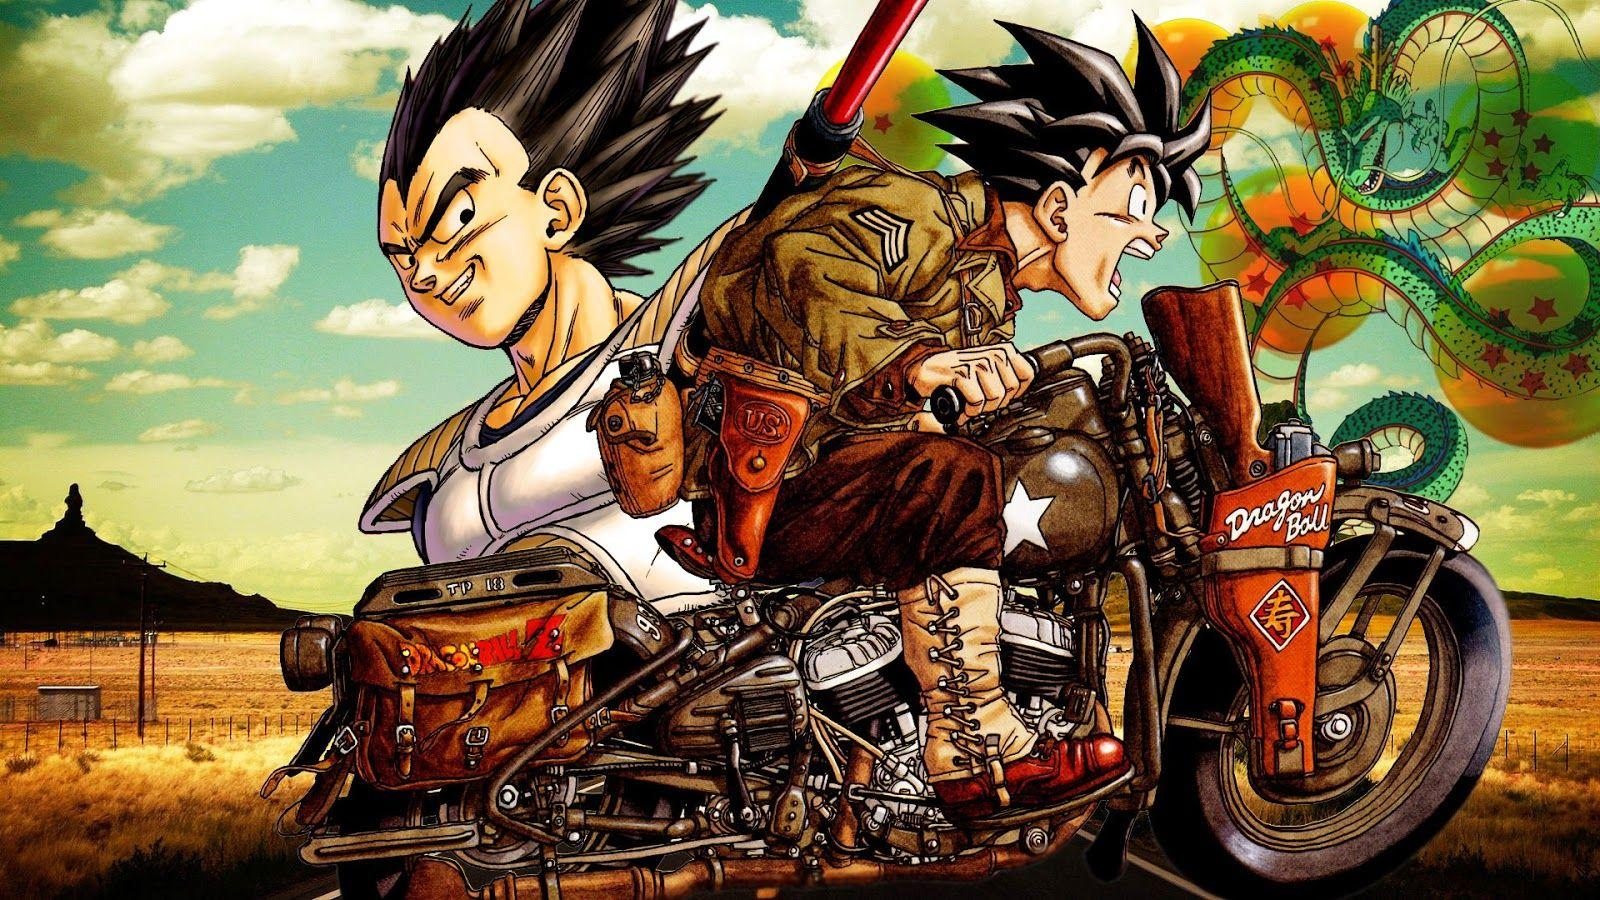 Dragon Ball Z HD Wallpapers Backgrounds Wallpaper | HD Wallpapers ...